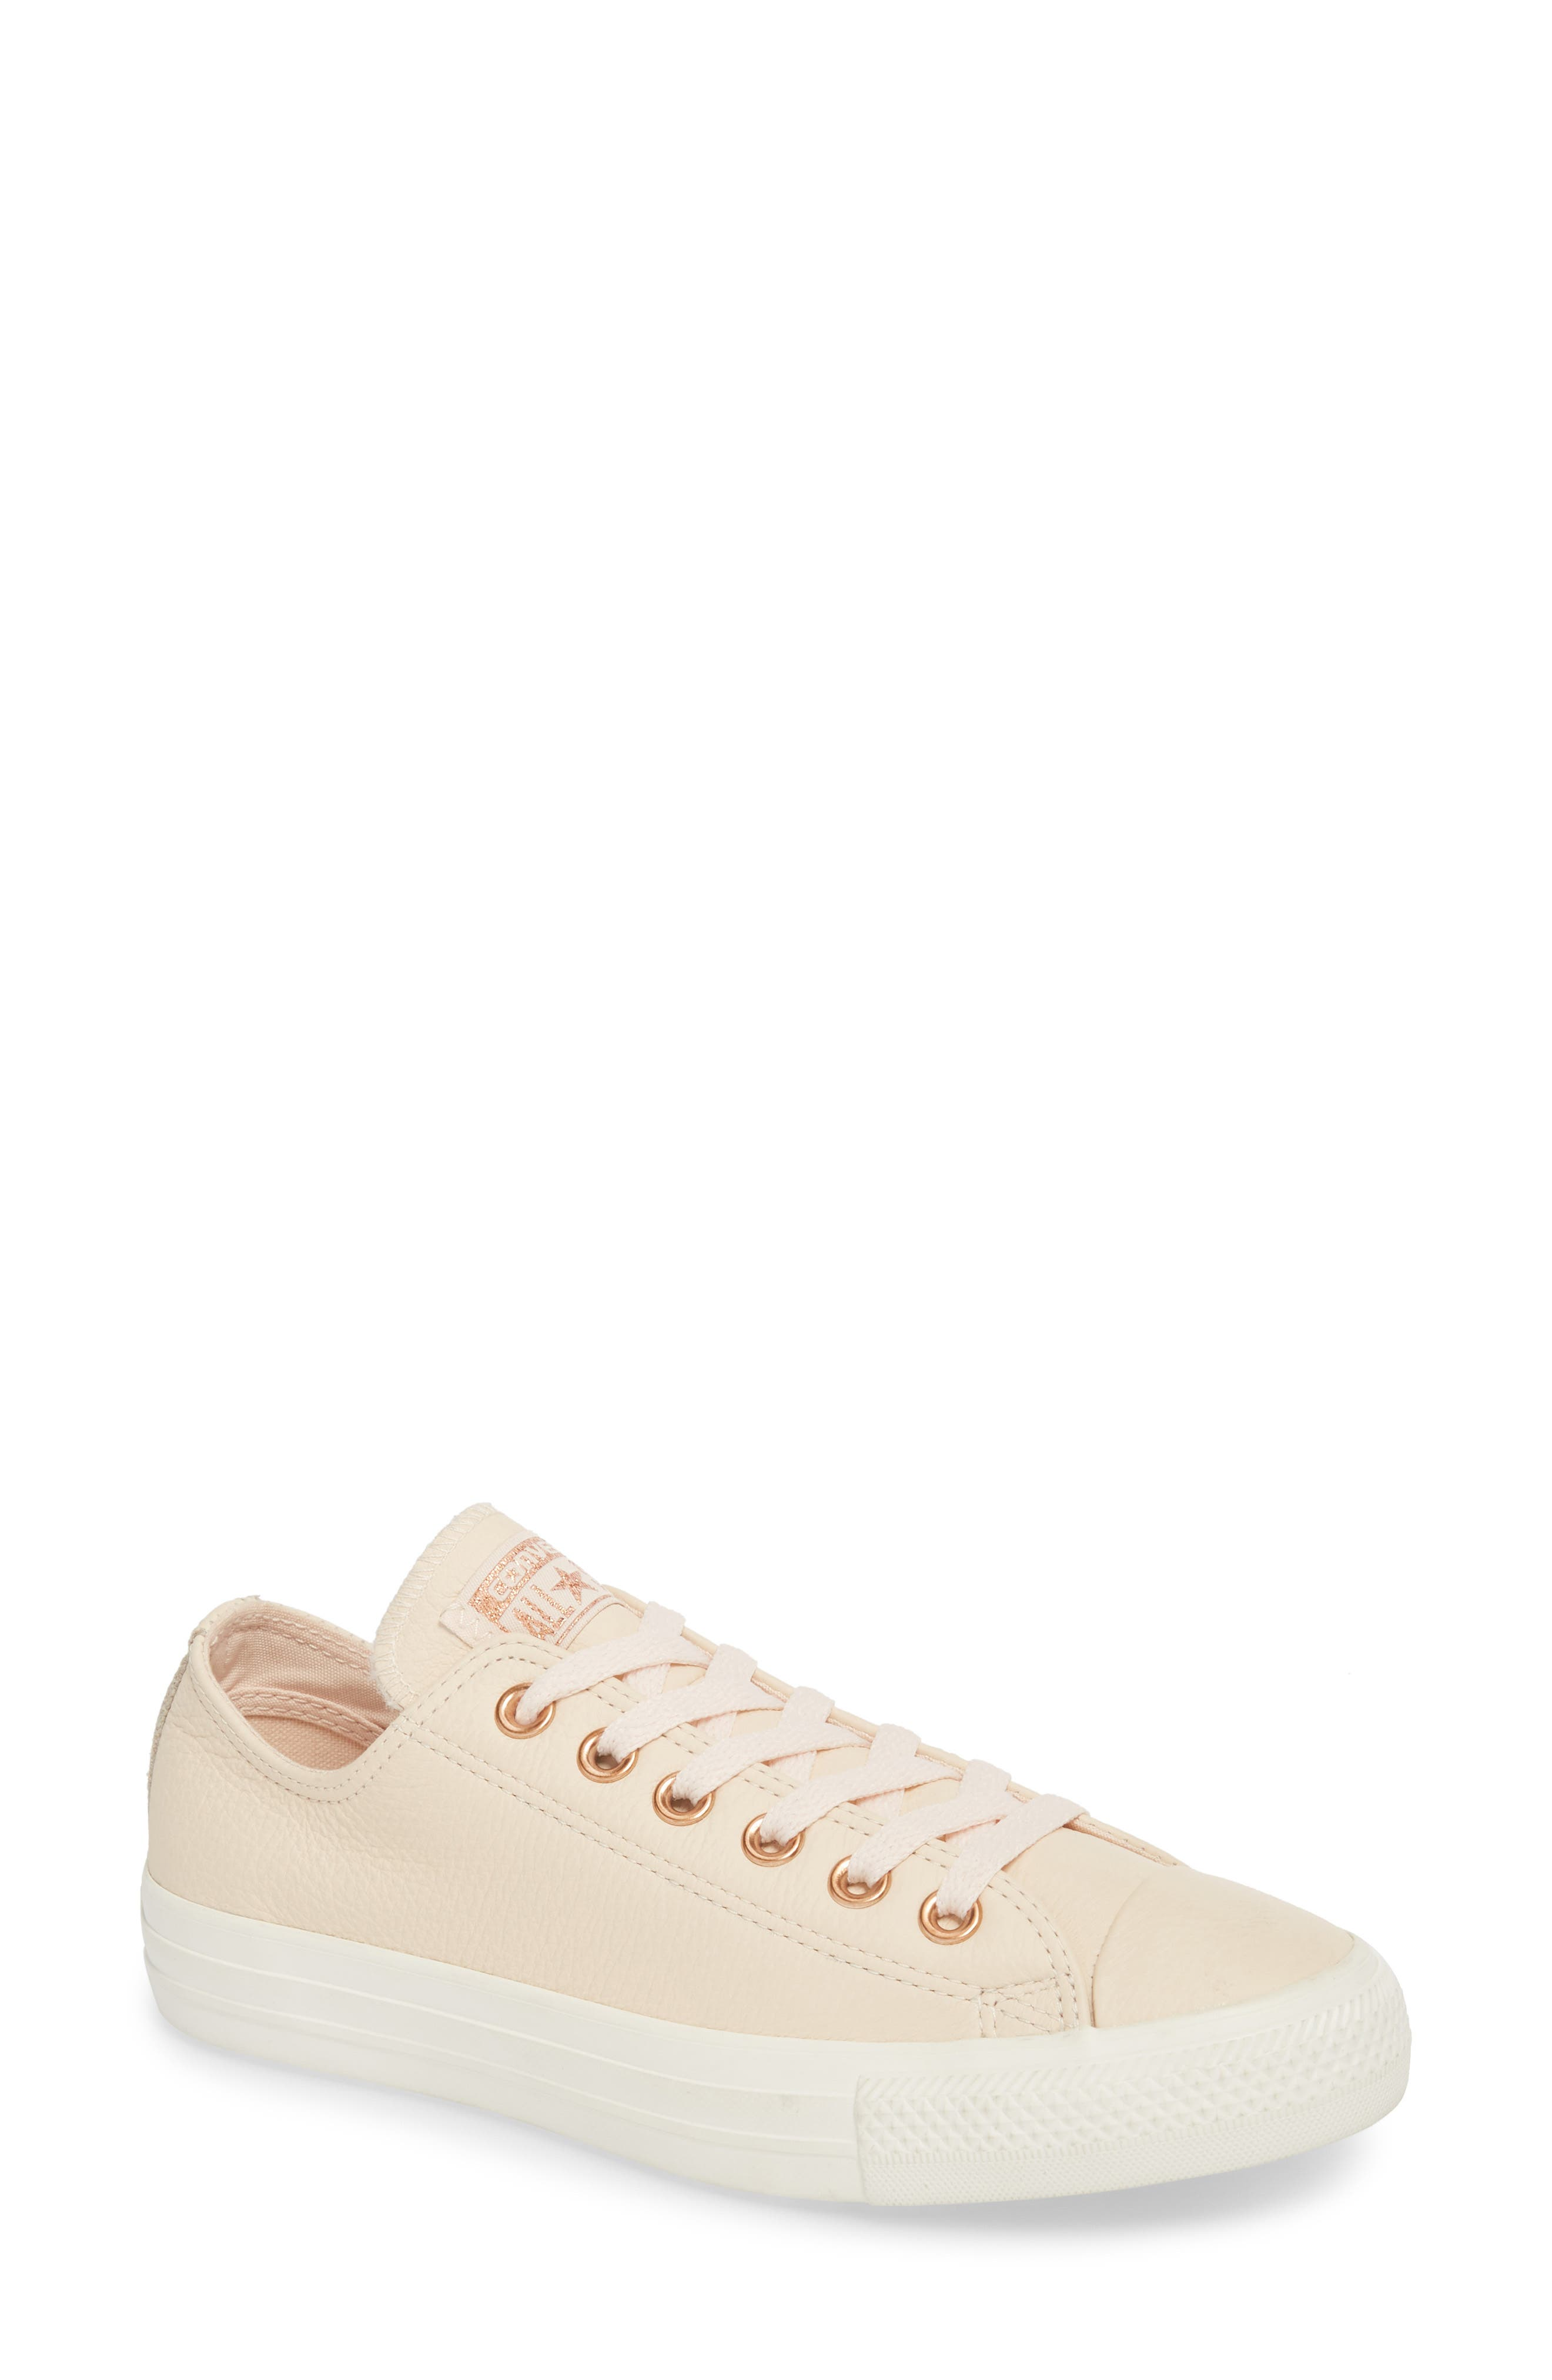 Chuck Taylor<sup>®</sup> All Star<sup>®</sup> Seasonal Ox Low Top Sneaker,                             Main thumbnail 1, color,                             Pastel Rose Leather